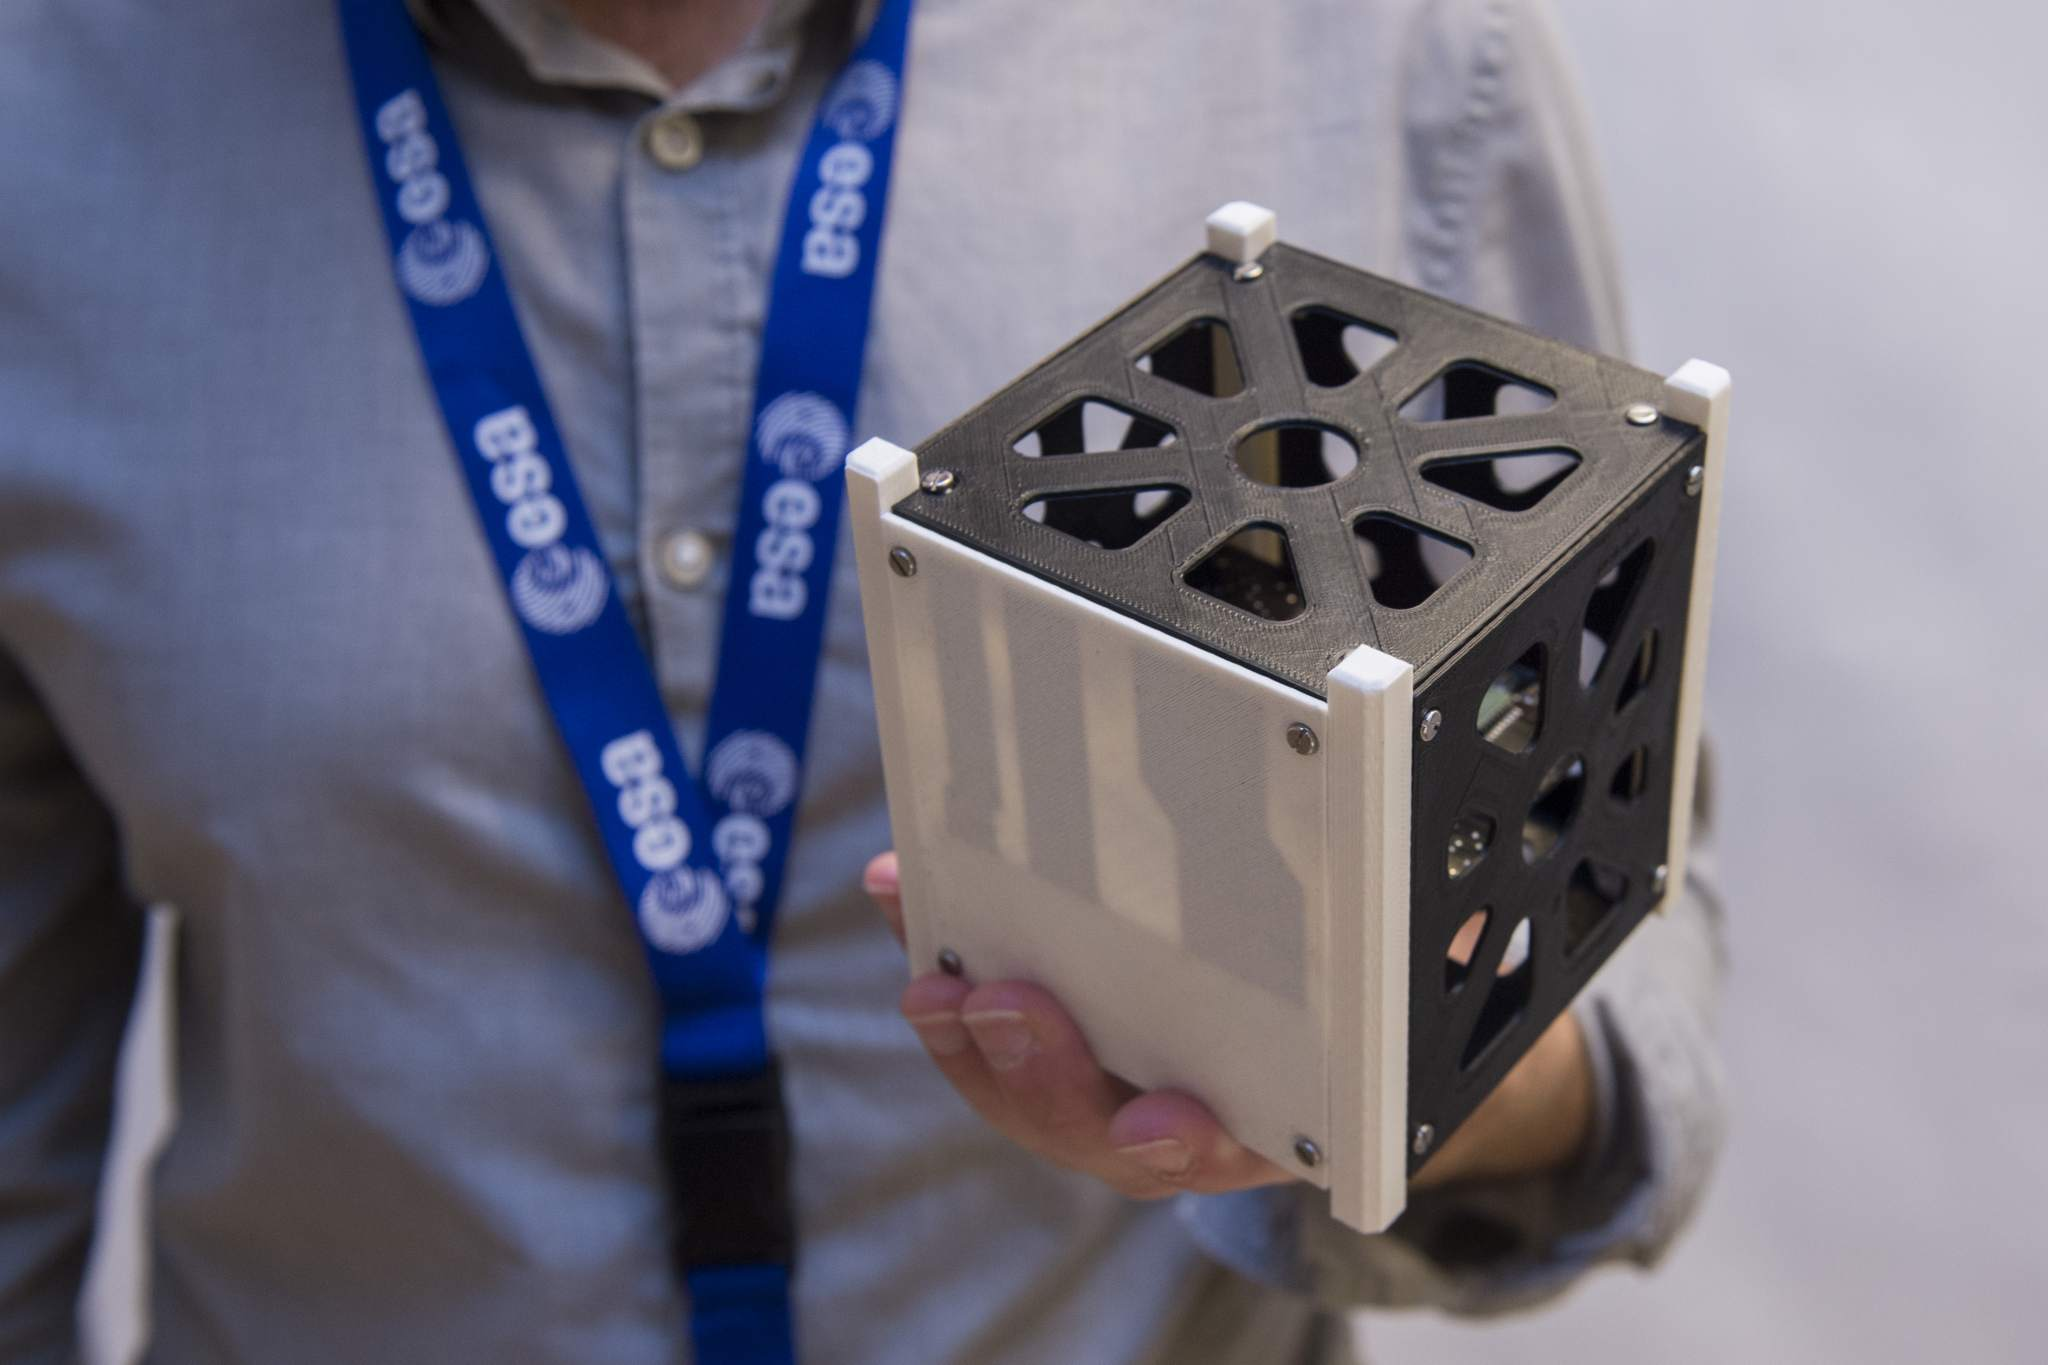 The darker electrical lines are visible through the white side of the Cube sat. Photo via ESA/Medialab.